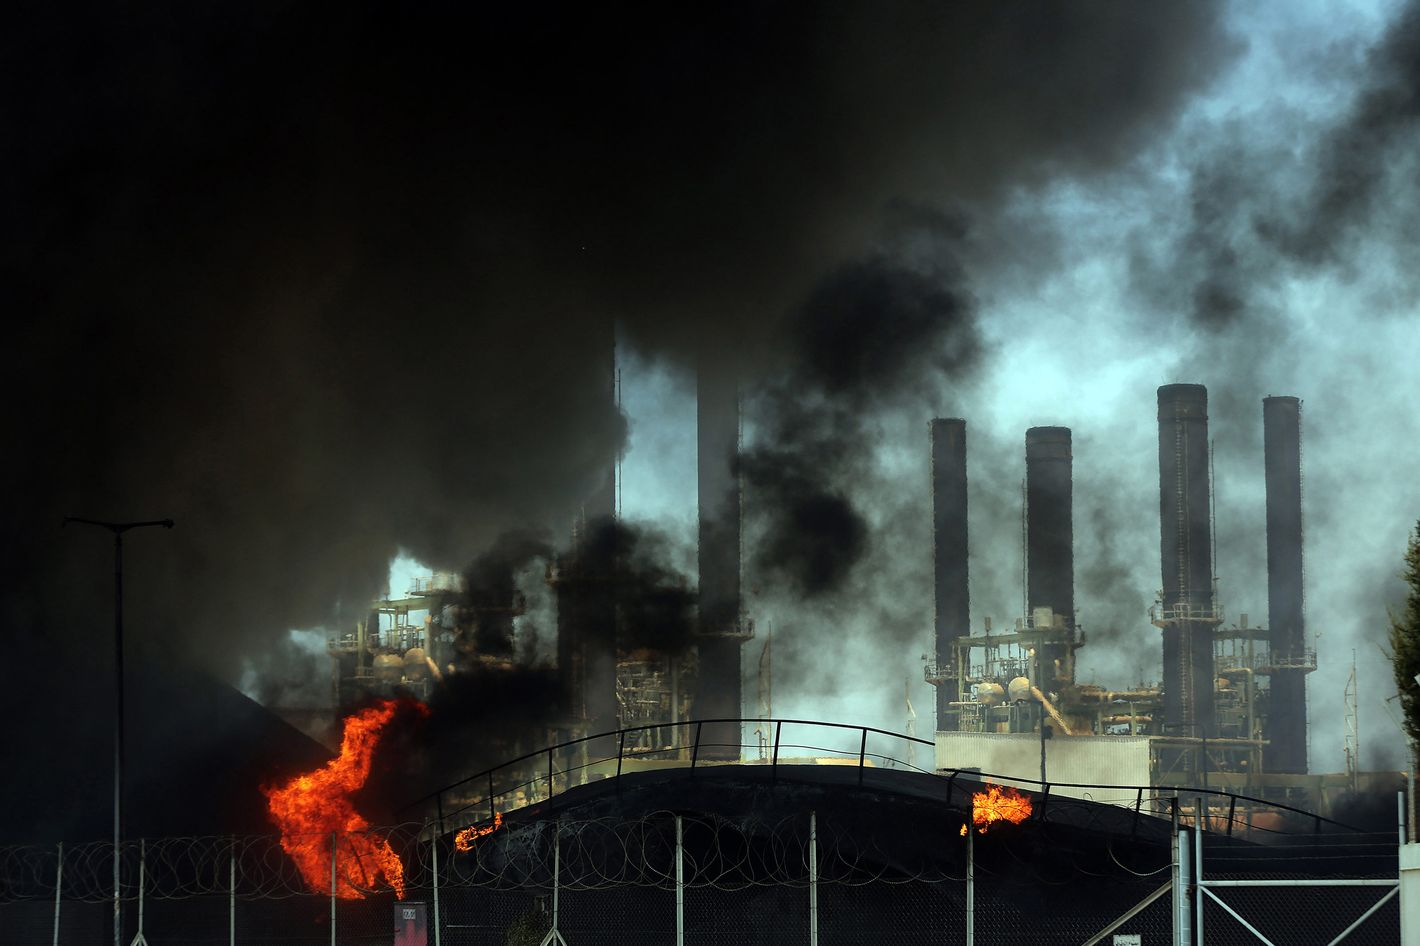 GAZA CITY, GAZA - JULY 29 :  The Gaza Strip's only power plant's fuel depot is seen engulfed in flames after it was hit by an Israeli air strike on July 29, 2014. The Gaza Strip's only power plant was forced to shut down Tuesday after an Israeli attack hit the facility's fuel depot. (Photo by Ali Jadallah/Anadolu Agency/Getty Images)